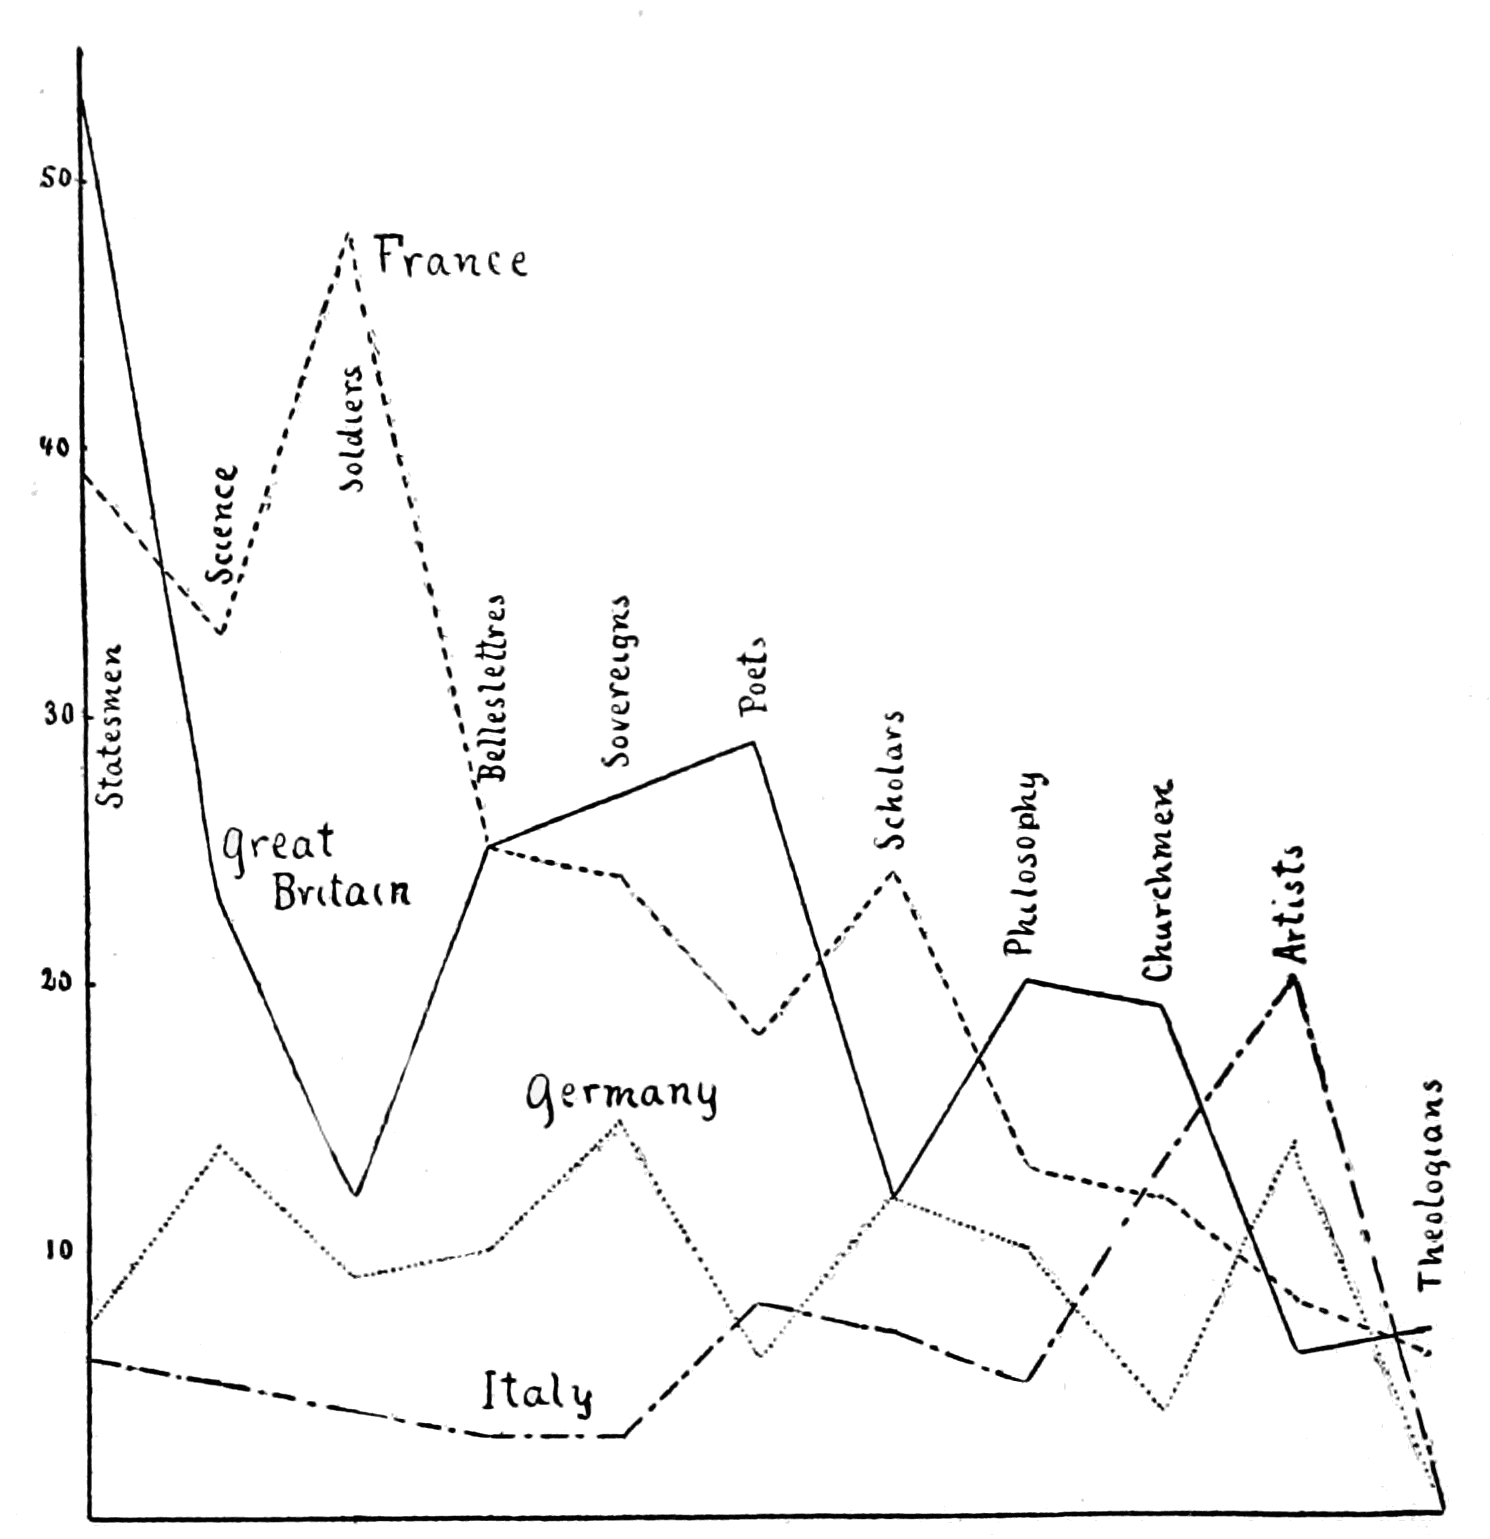 PSM V62 D381 Statistical curves of human accomplishments by nationality.png